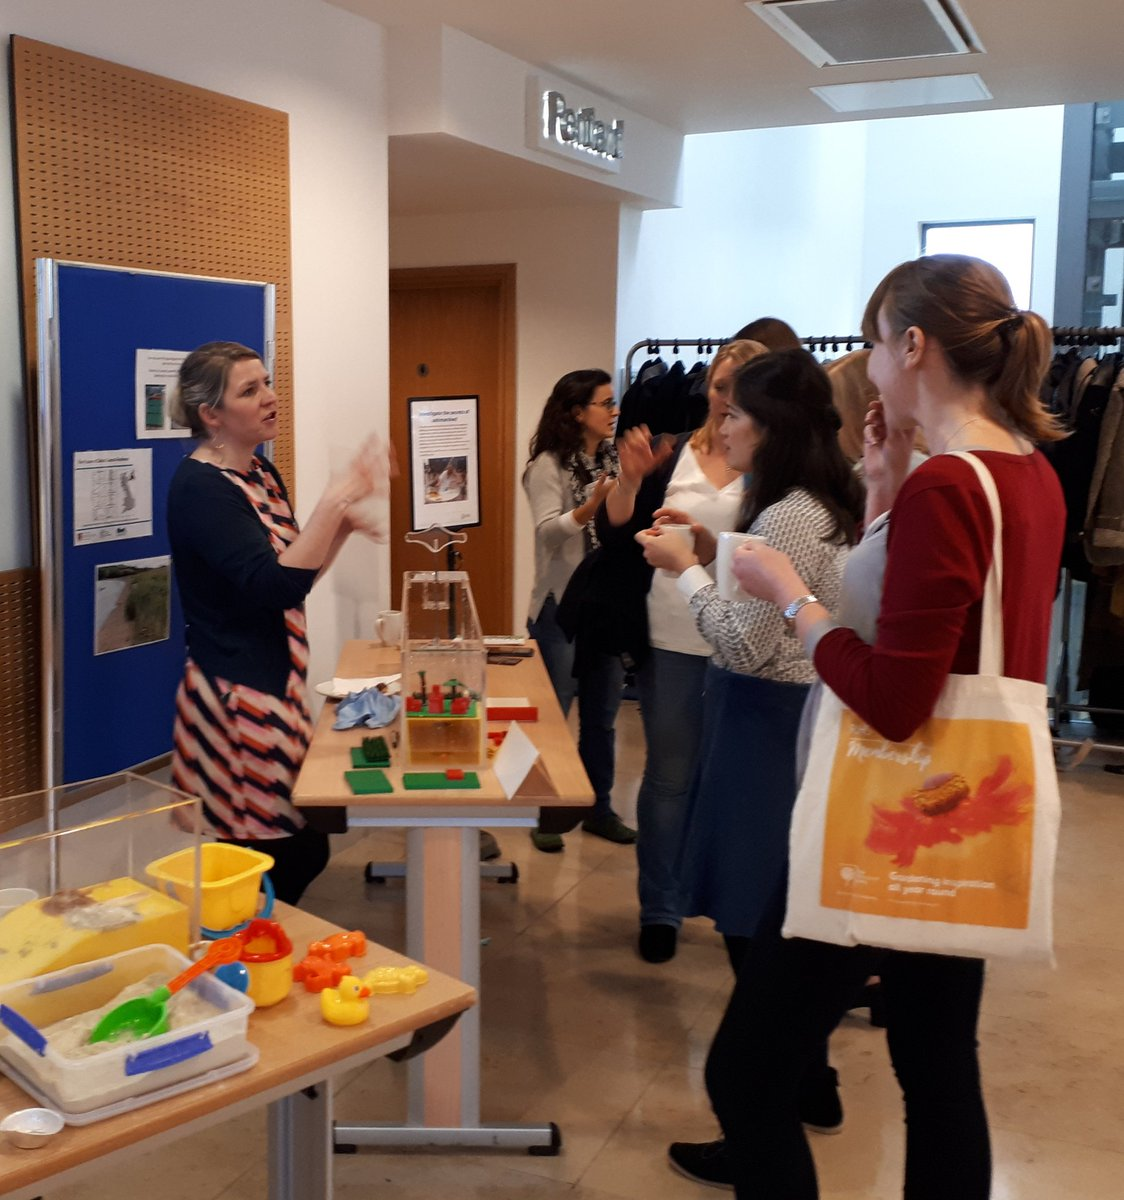 Afternoon tea &amp; activities. Demonstrations by @EmmaJMcKinley and @JFTweddle were particularly popular @ValuingN #ValNat17 #ecosystemservices <br>http://pic.twitter.com/cUlC0IazHr